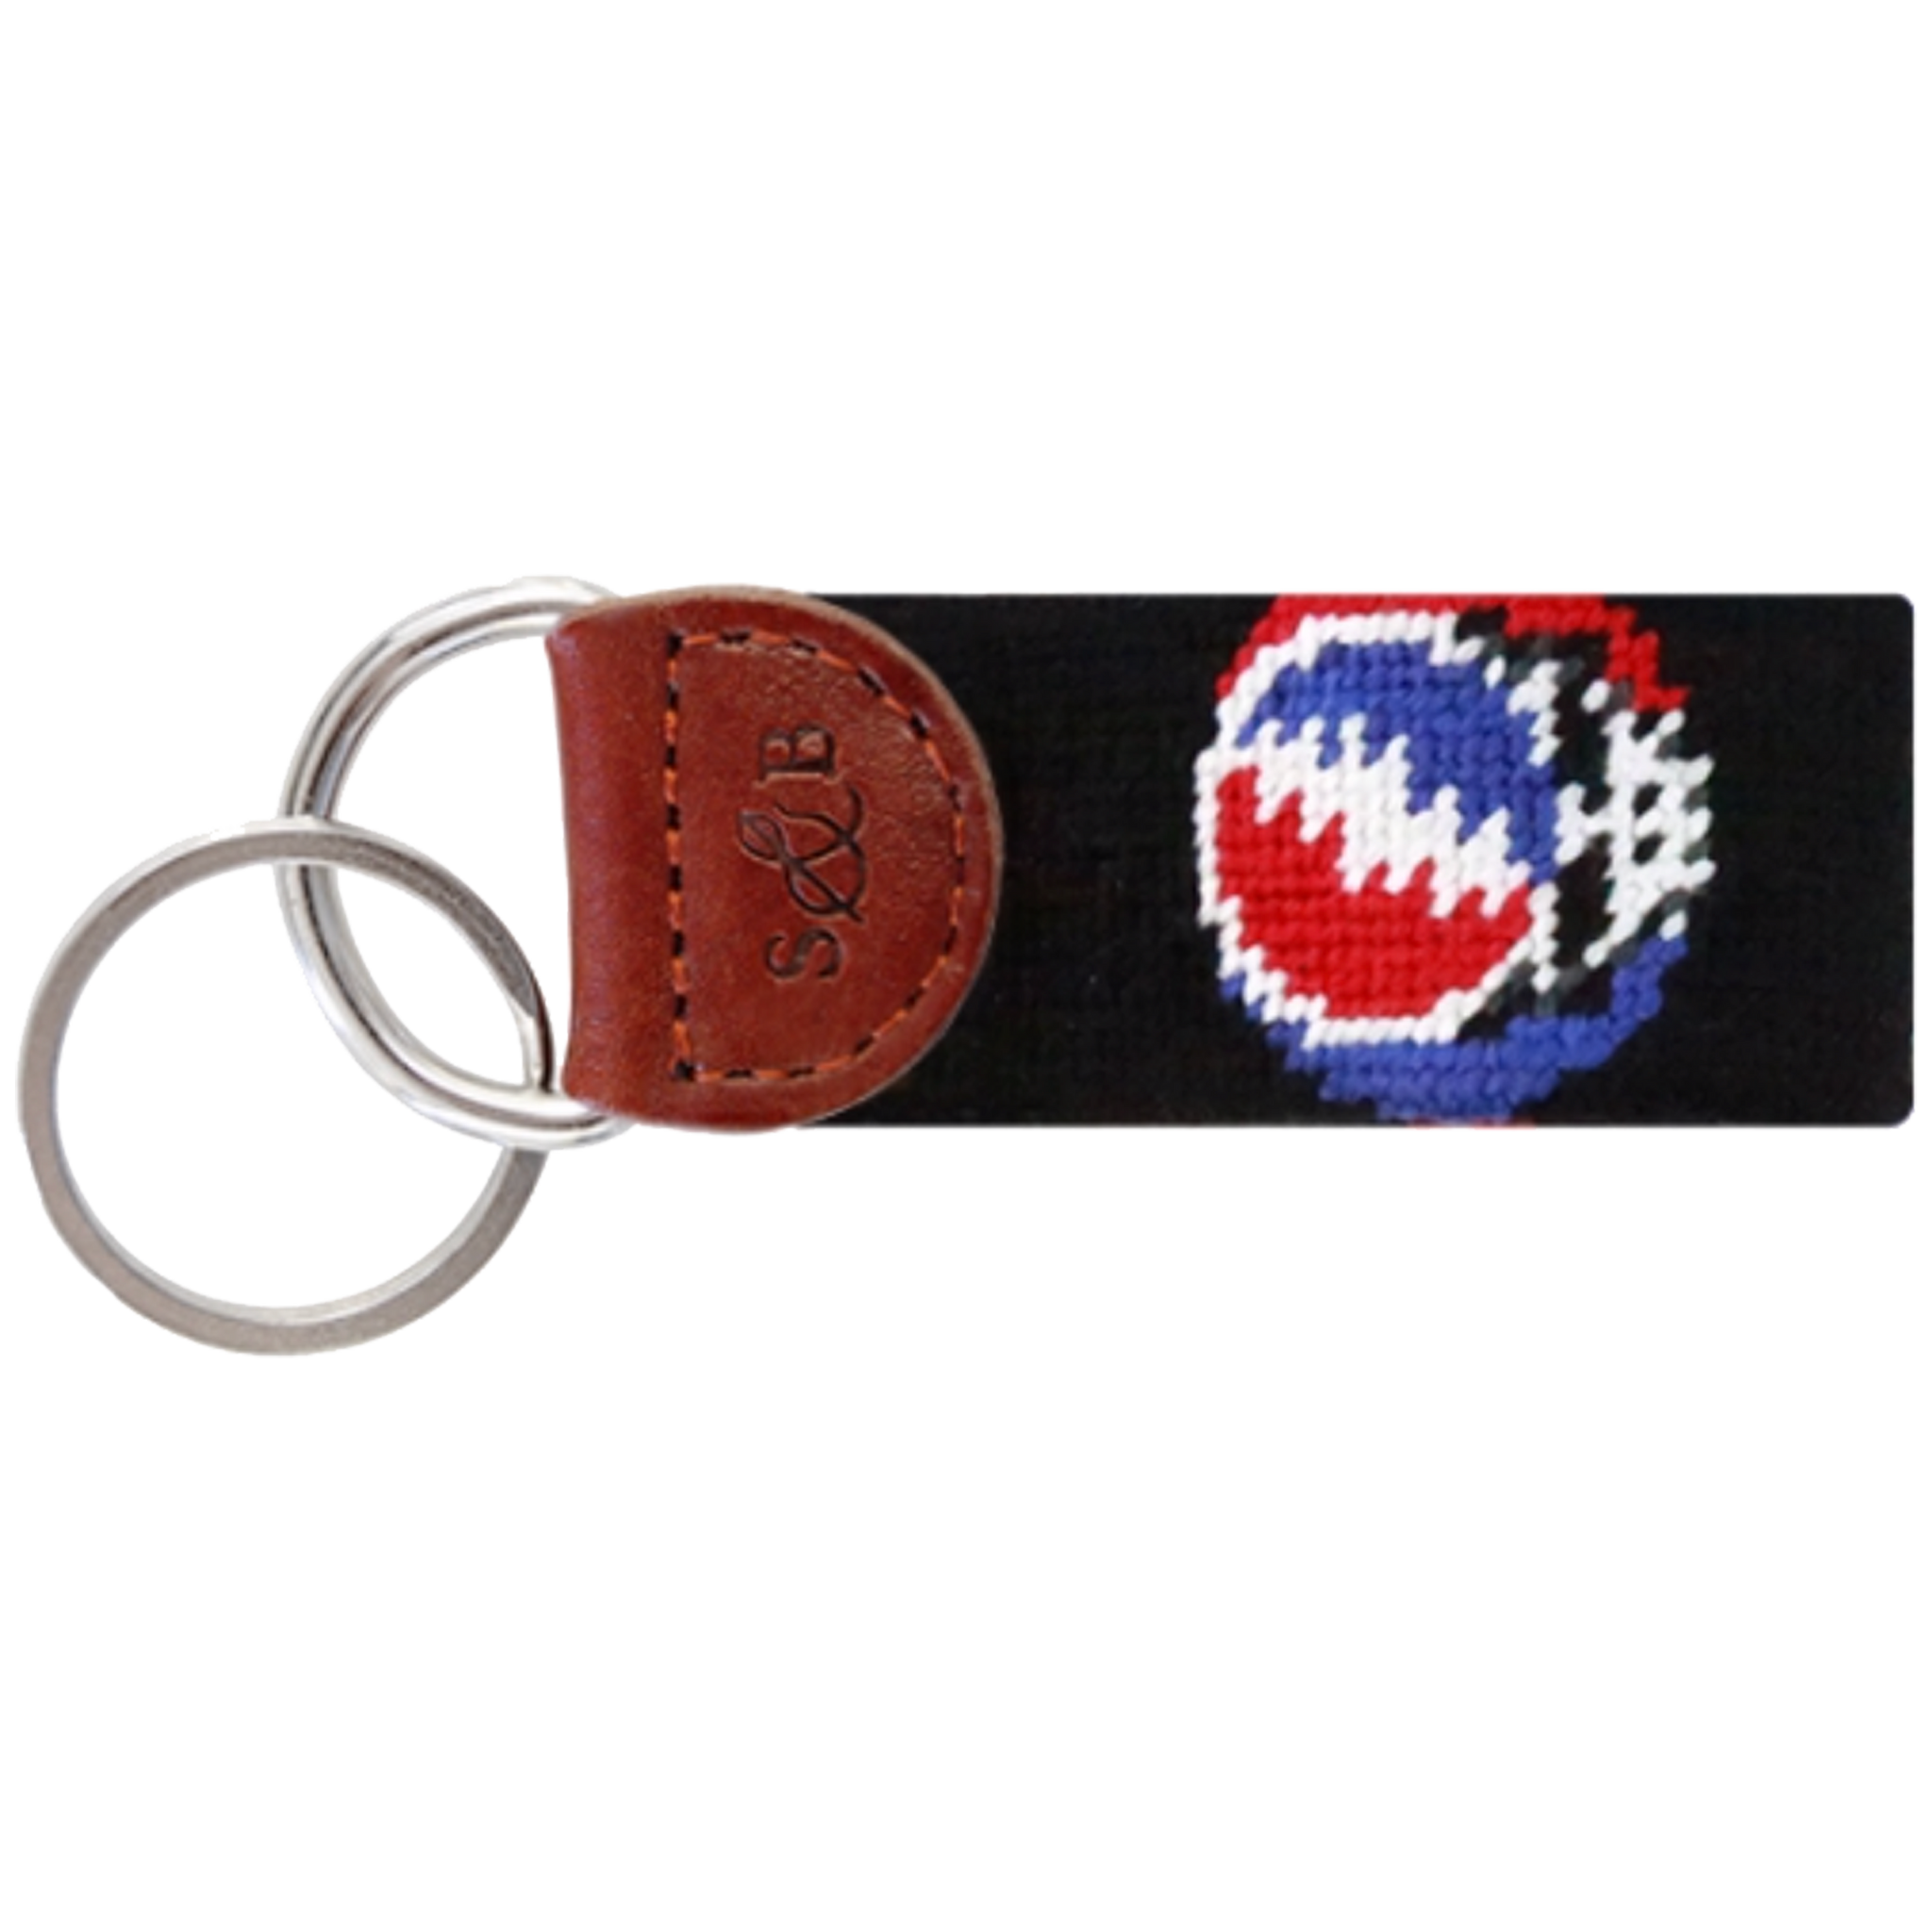 Smathers & Branson Steal Your Face Key Fob - Black